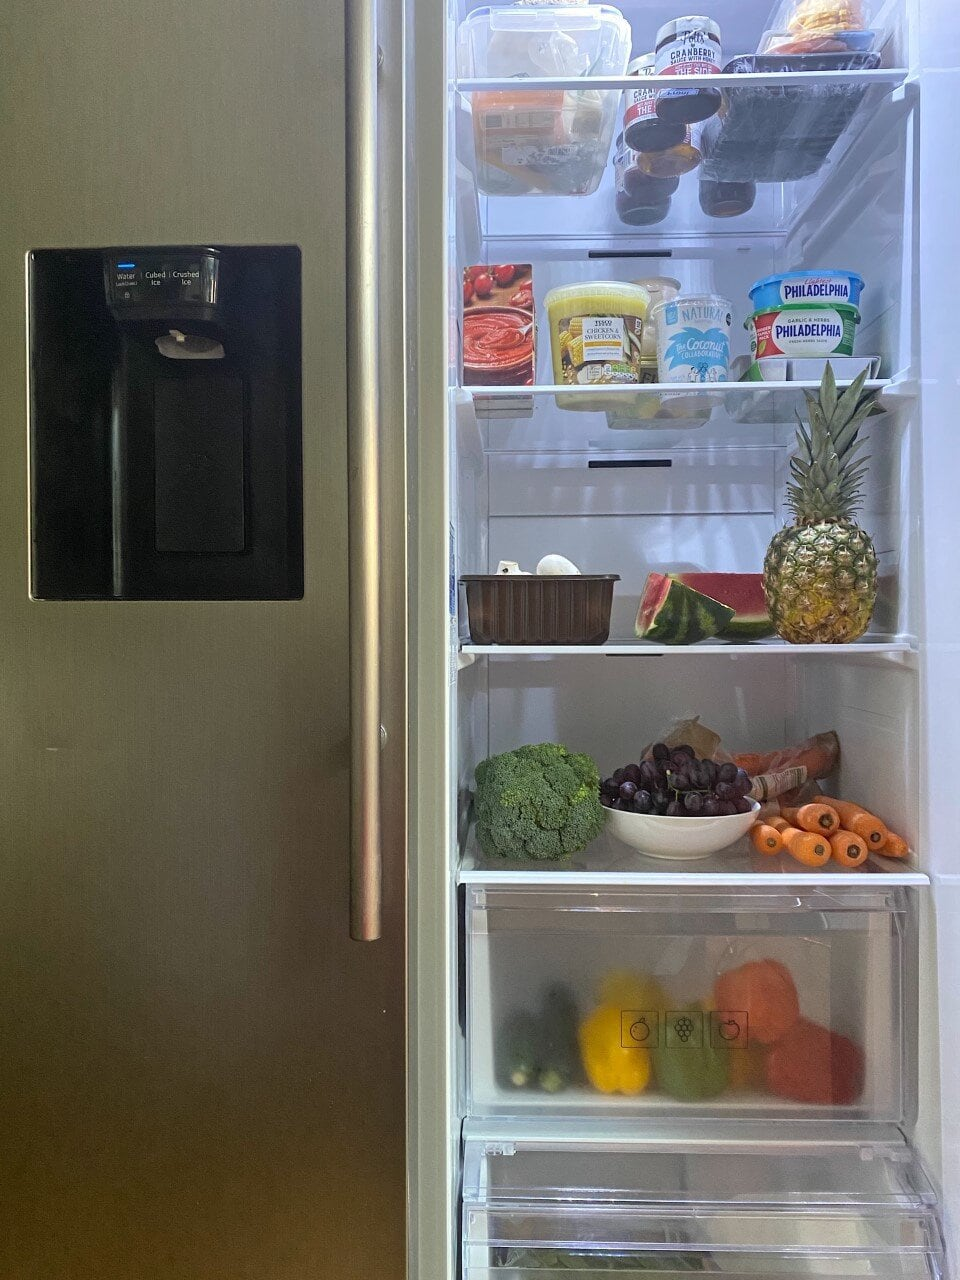 Samsung American Fridge Freezer RS8000, American Fridge Freezer, Samsung Fridge freezer, family life, review, fridge review, freezer review, entertaining, kitchen, kitchen decor, food, groceries